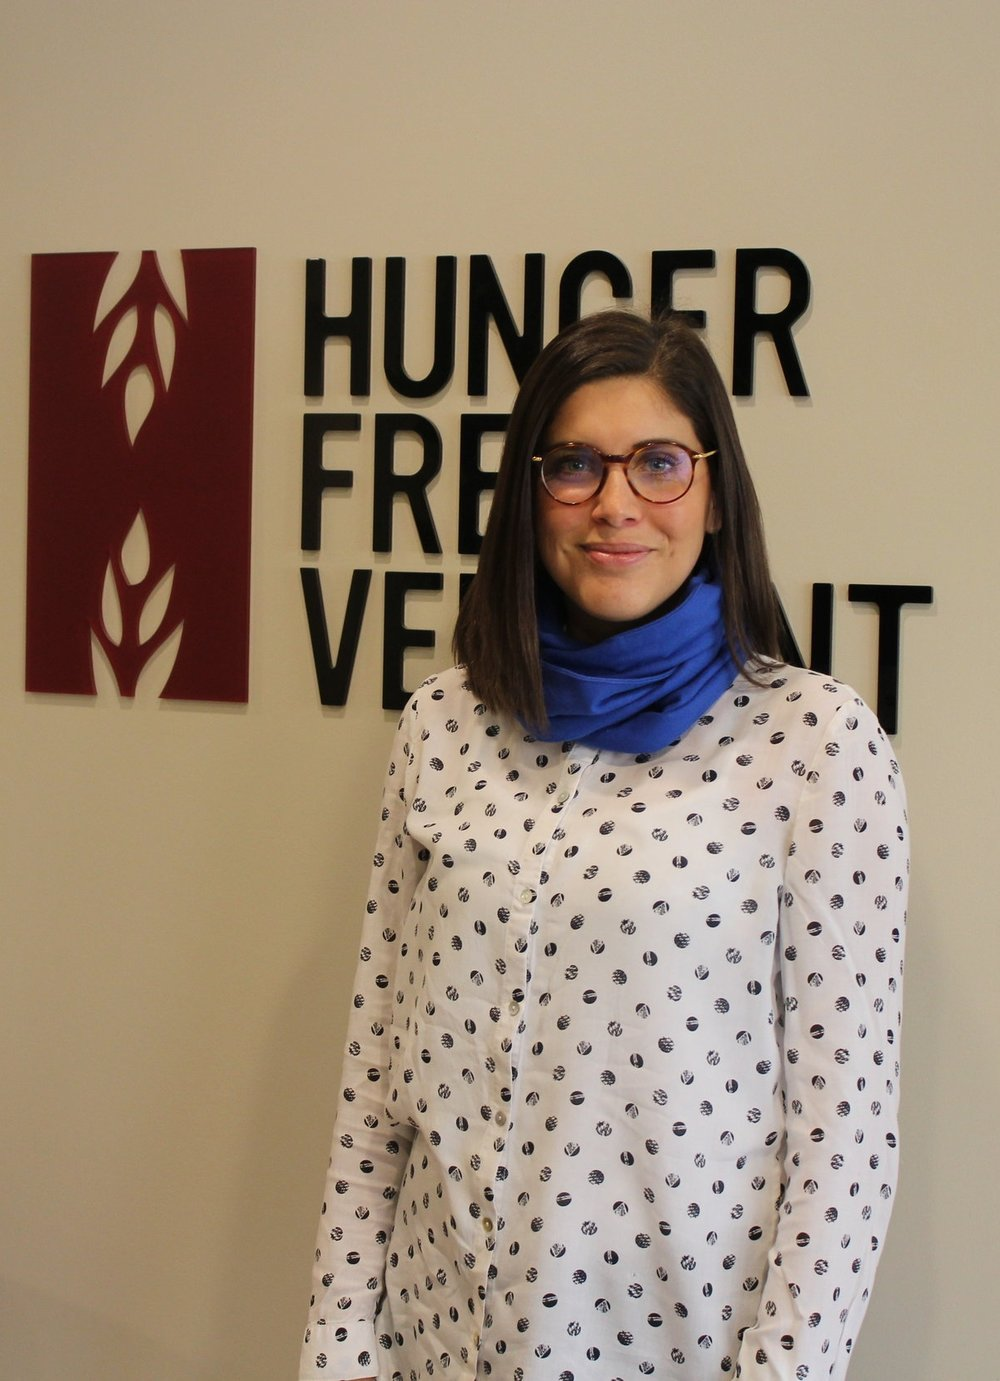 Sabiha Mujkic - Nutrition Education & Direct Market Outreach CoordinatorAmeriCorps VISTA memberAnti-Hunger and Opportunity Corps, a project of the New York City Coalition Against HungerContact Sabiha